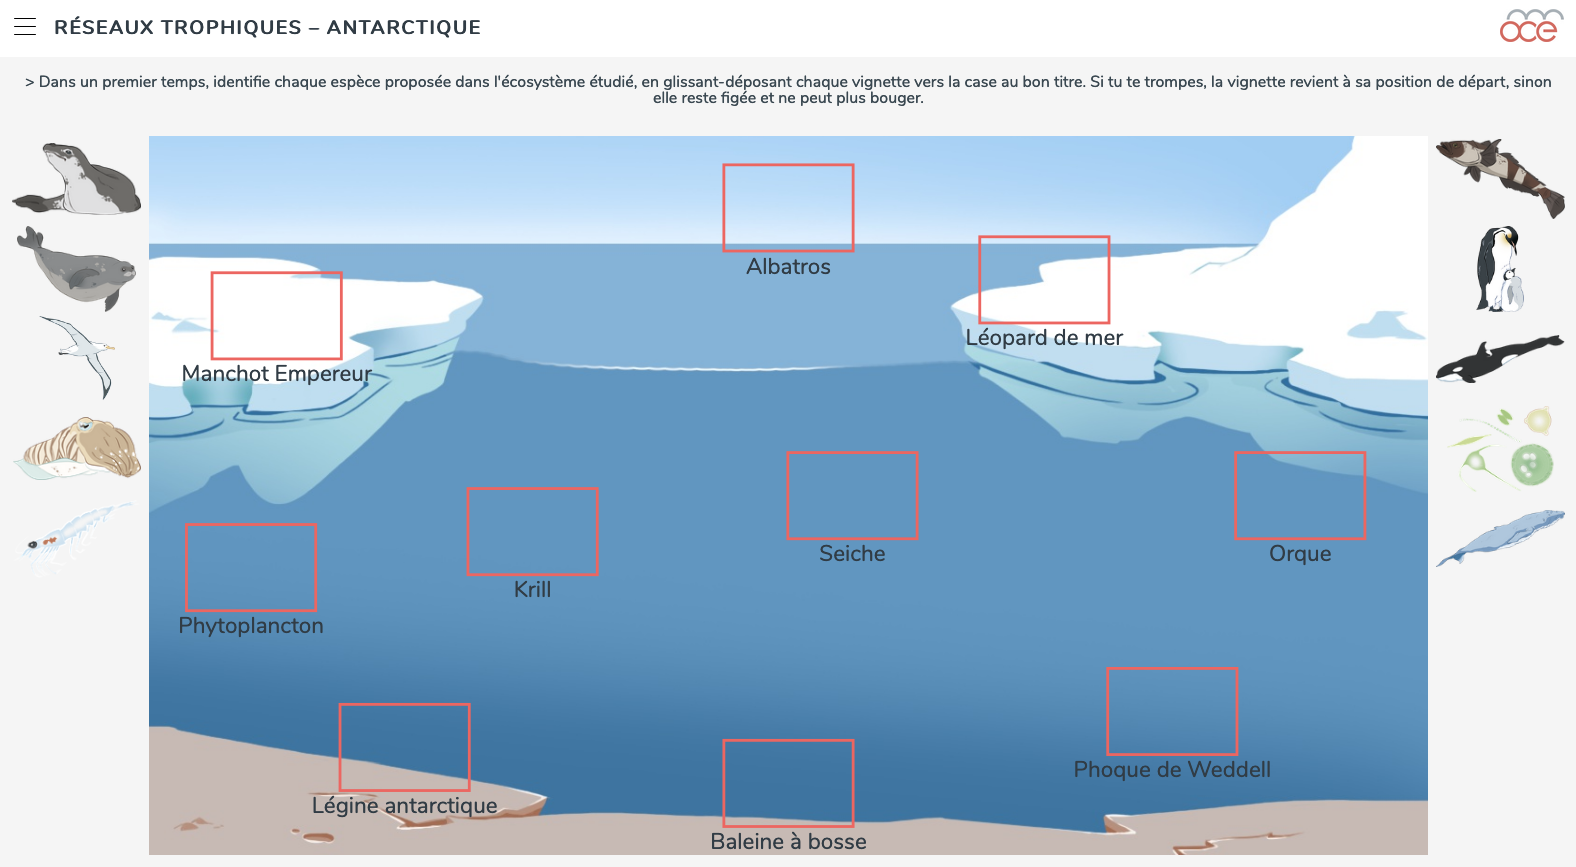 antarctic food webs image